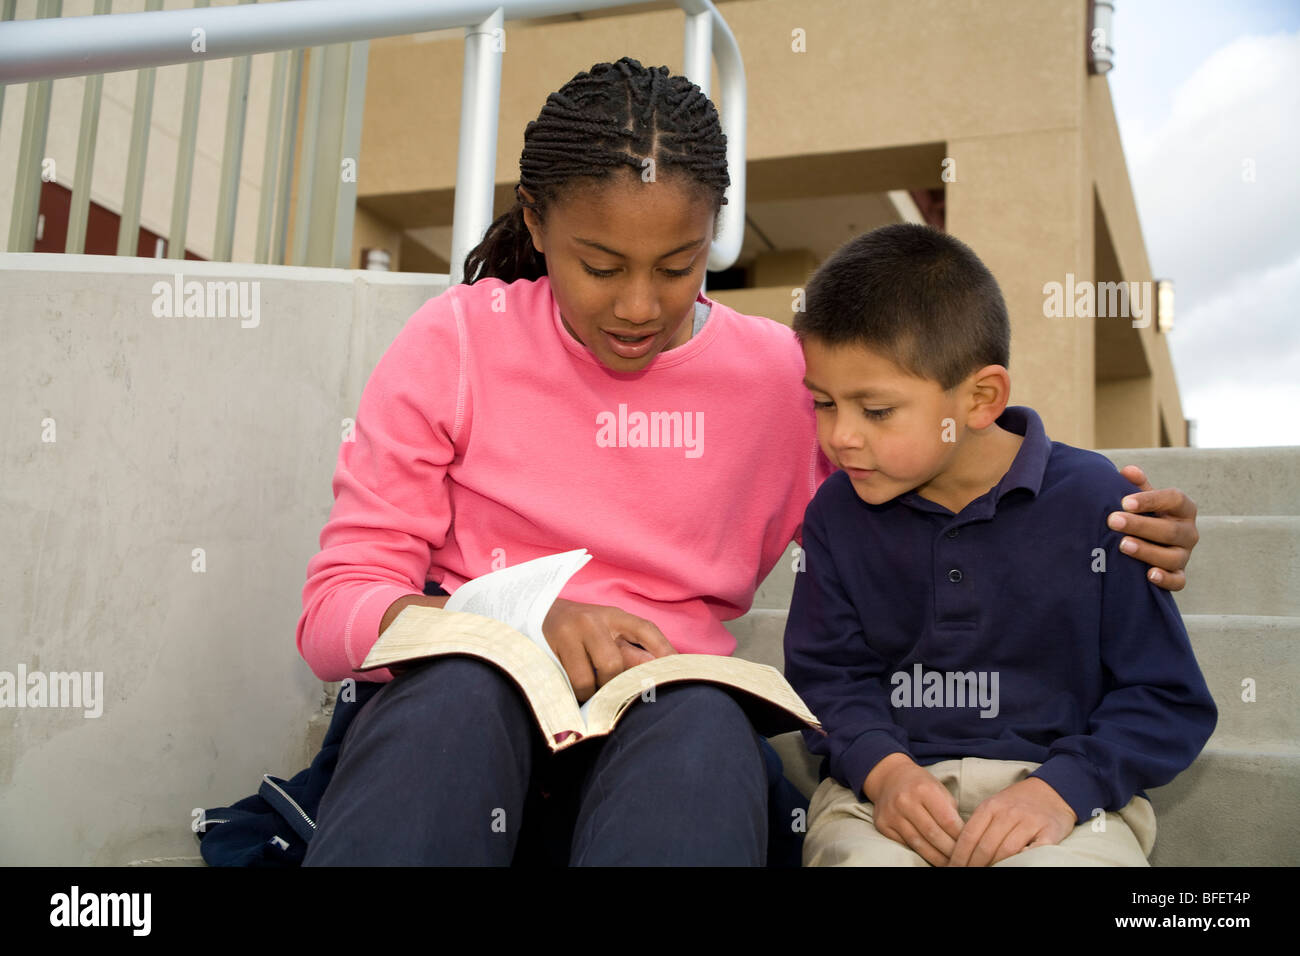 multiethnic multi racial diversity racially diverse multicultural girl 13-14 year years old reads Bible to boy 5 - Stock Image